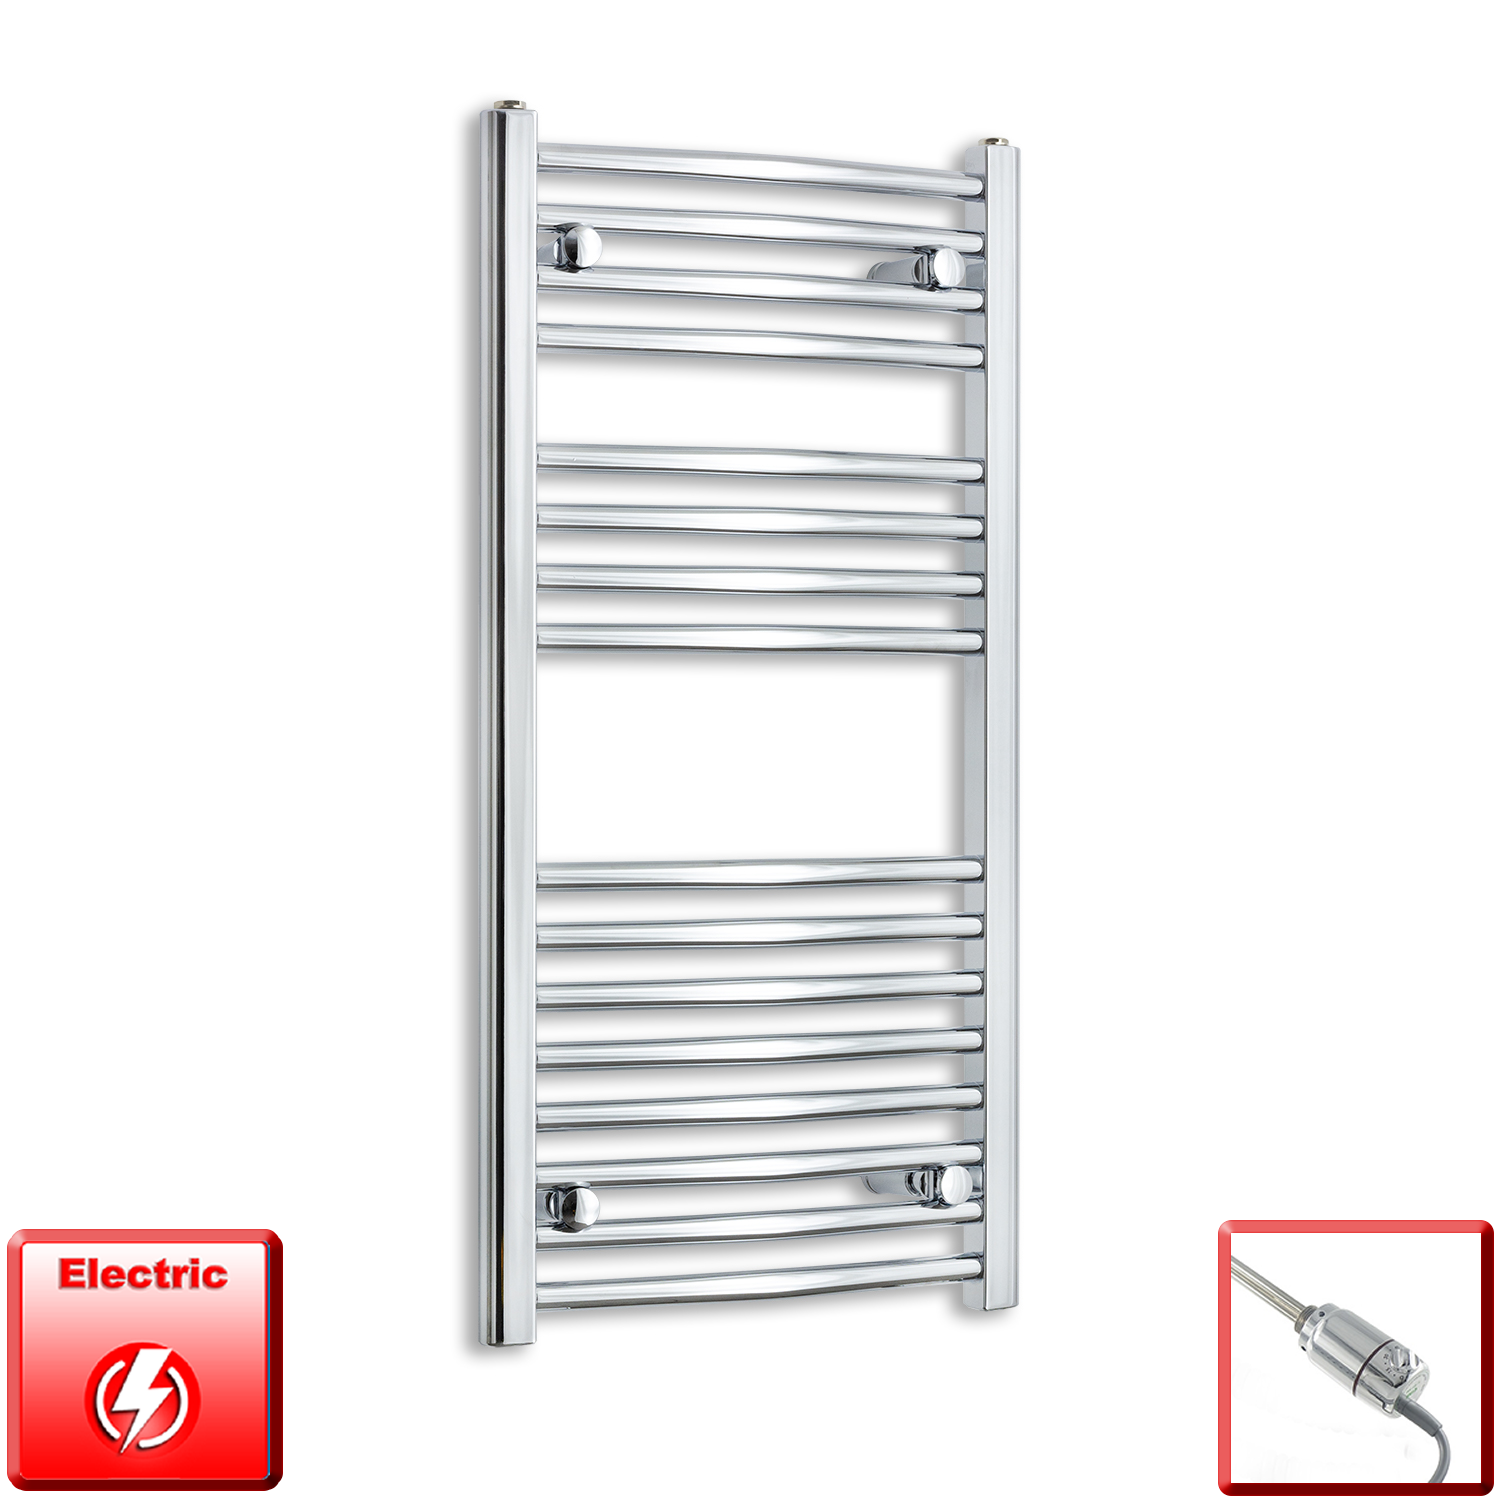 450mm Wide 900mm High Flat Or Curved Chrome Pre-Filled Electric Heated Towel Rail Radiator HTR,GT Thermostatic / Straight